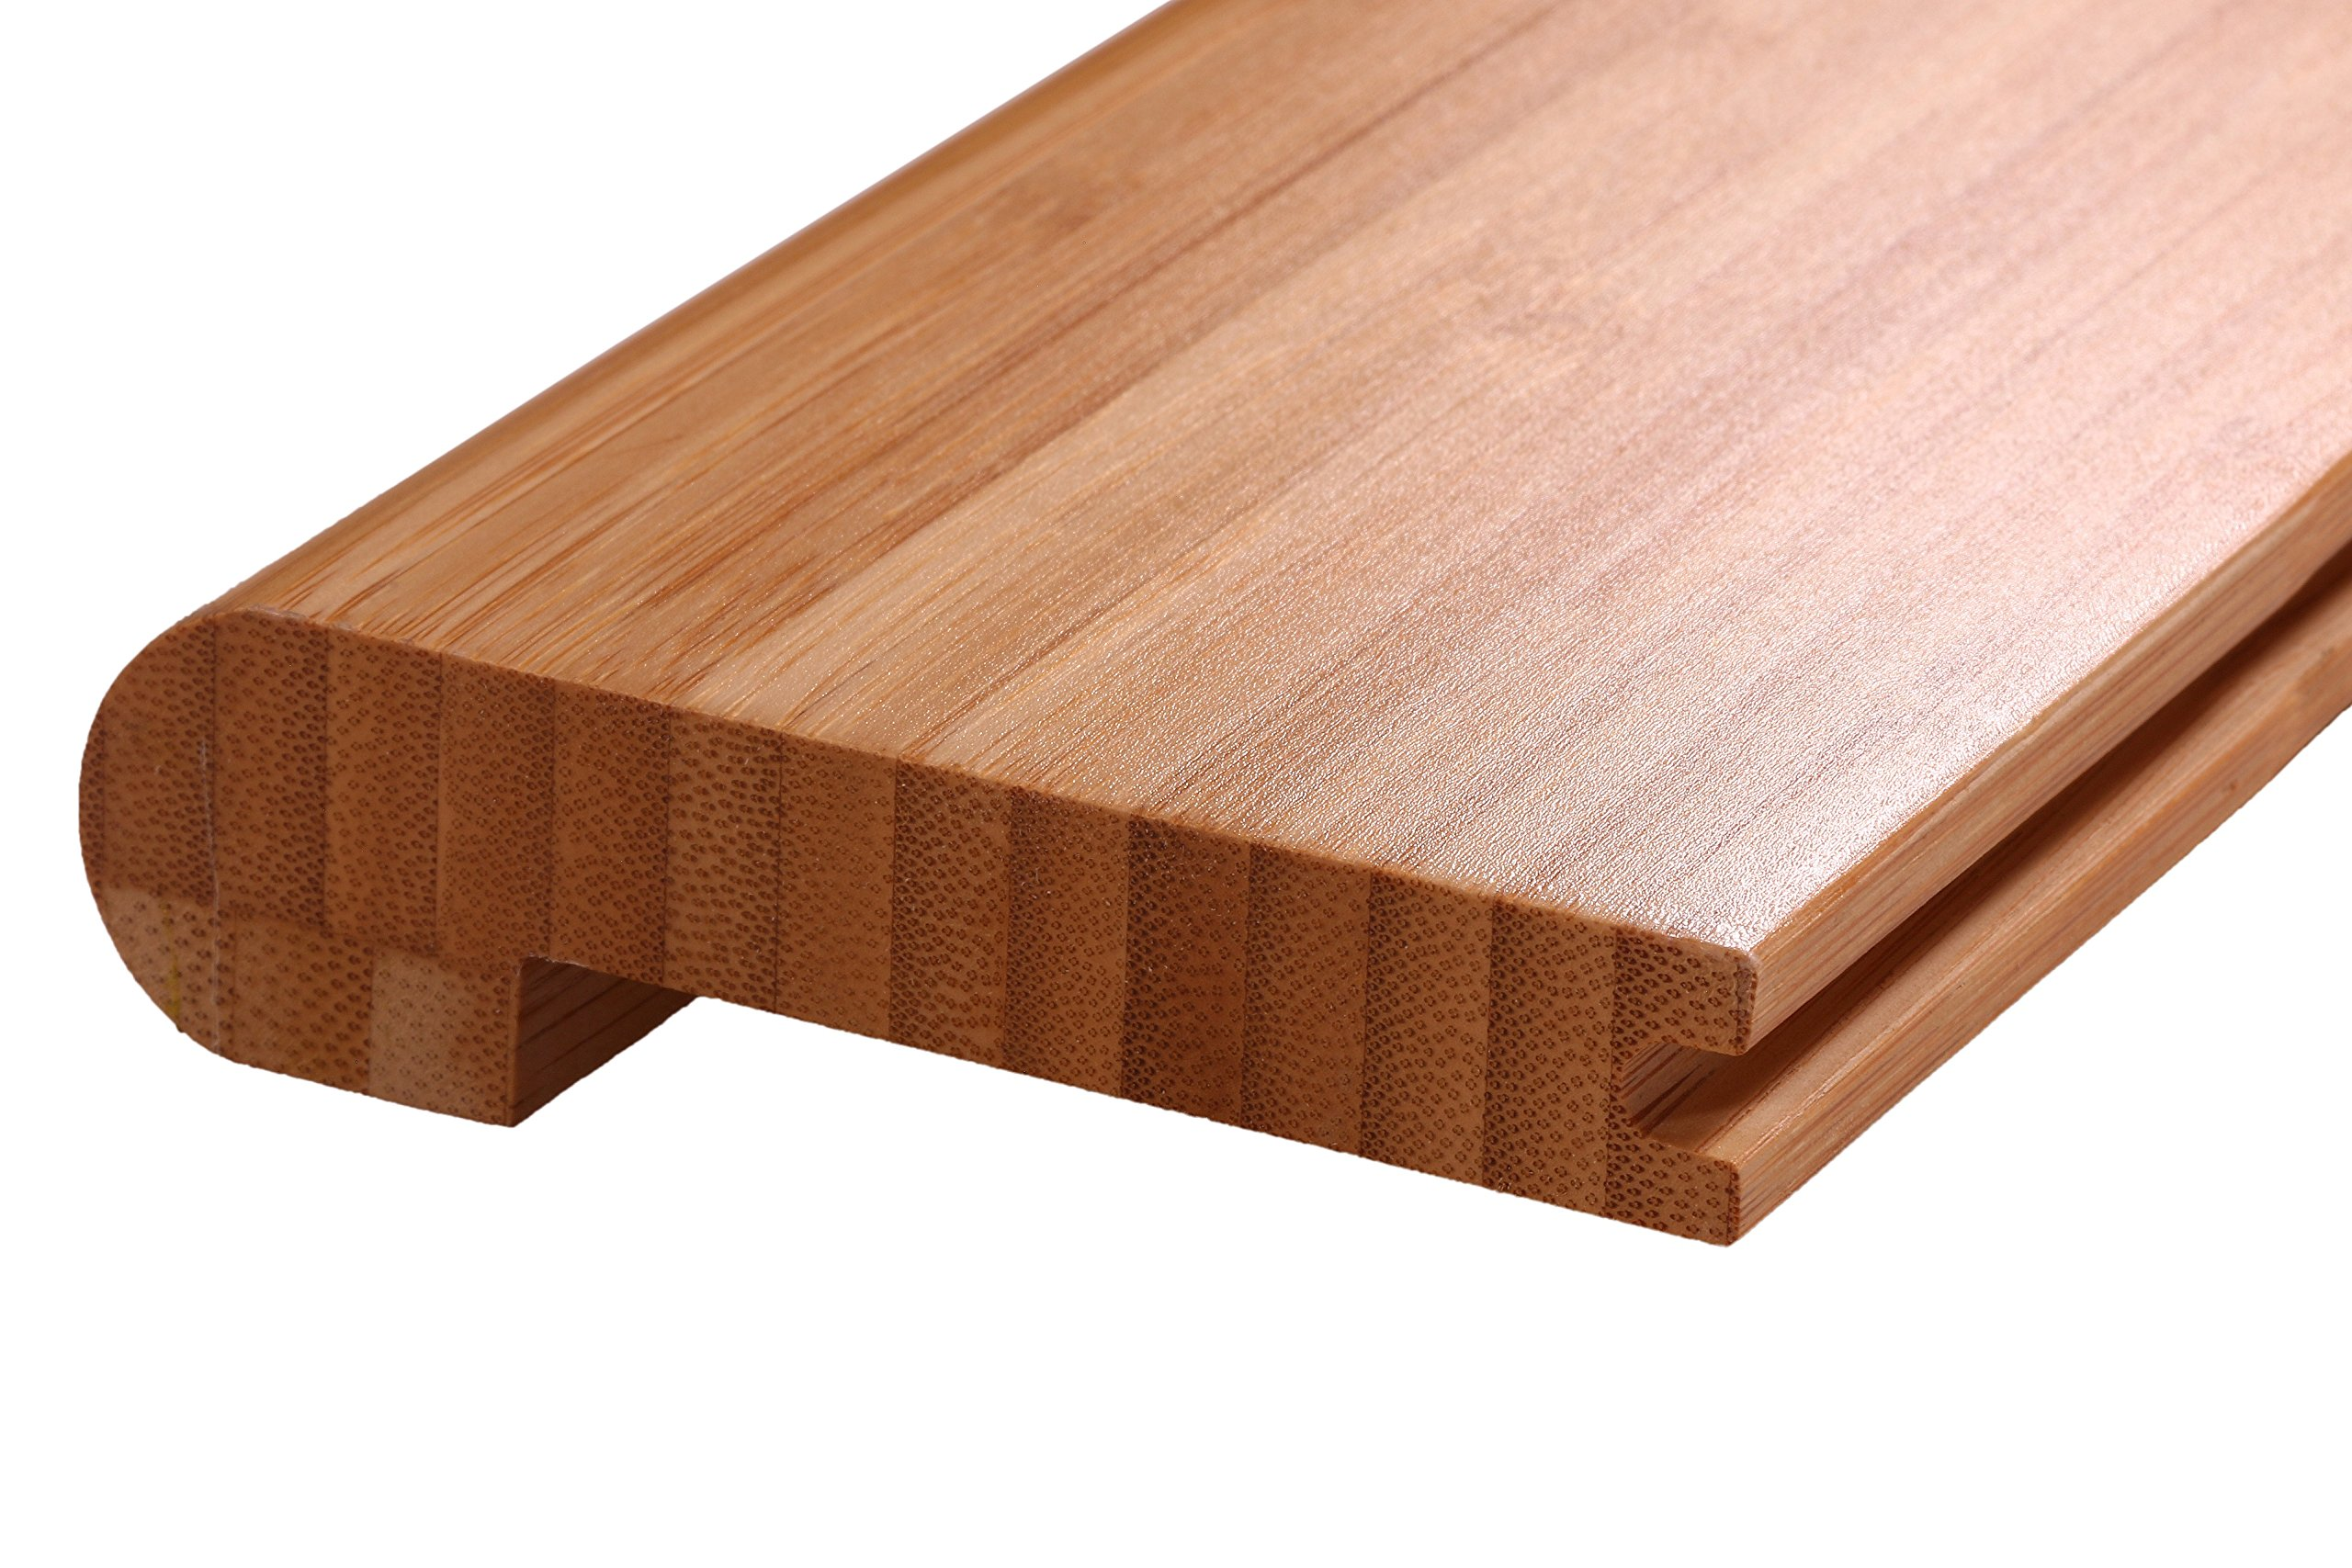 AMERIQUE Pre-Finished Solid Vertical Carbonized Bamboo Stair Nose, 72'' L x 3-1/2'' W x 3/4'' H